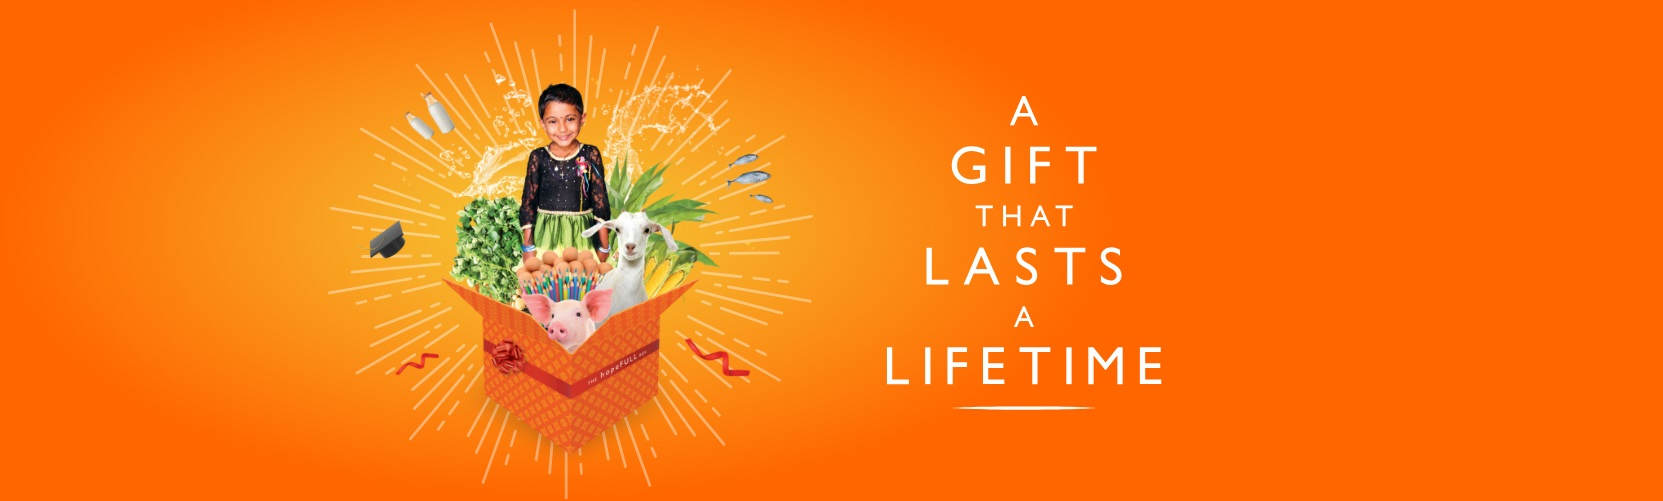 World Vision Australia's FY19 hopeFULL Gifts